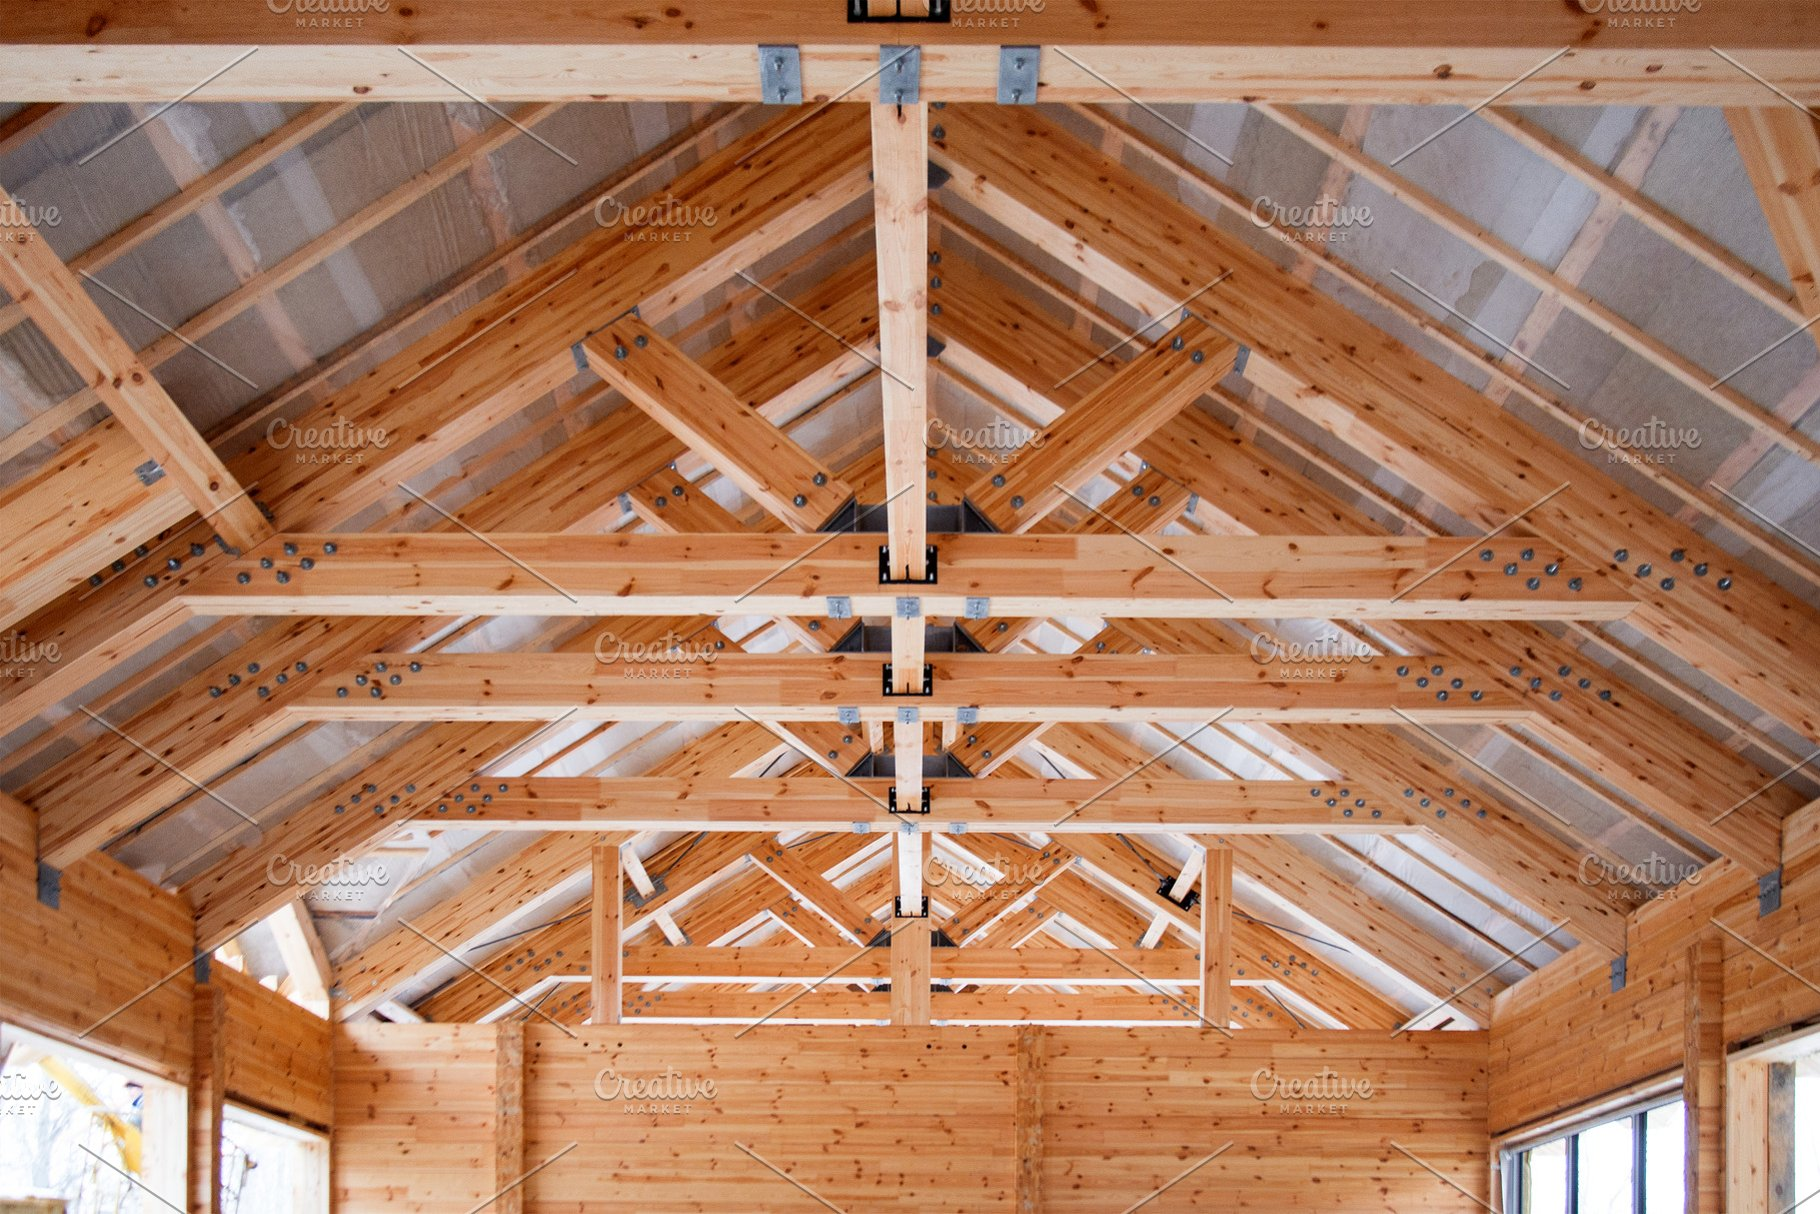 Roof Construction Of Wooden Trusses High Quality Architecture